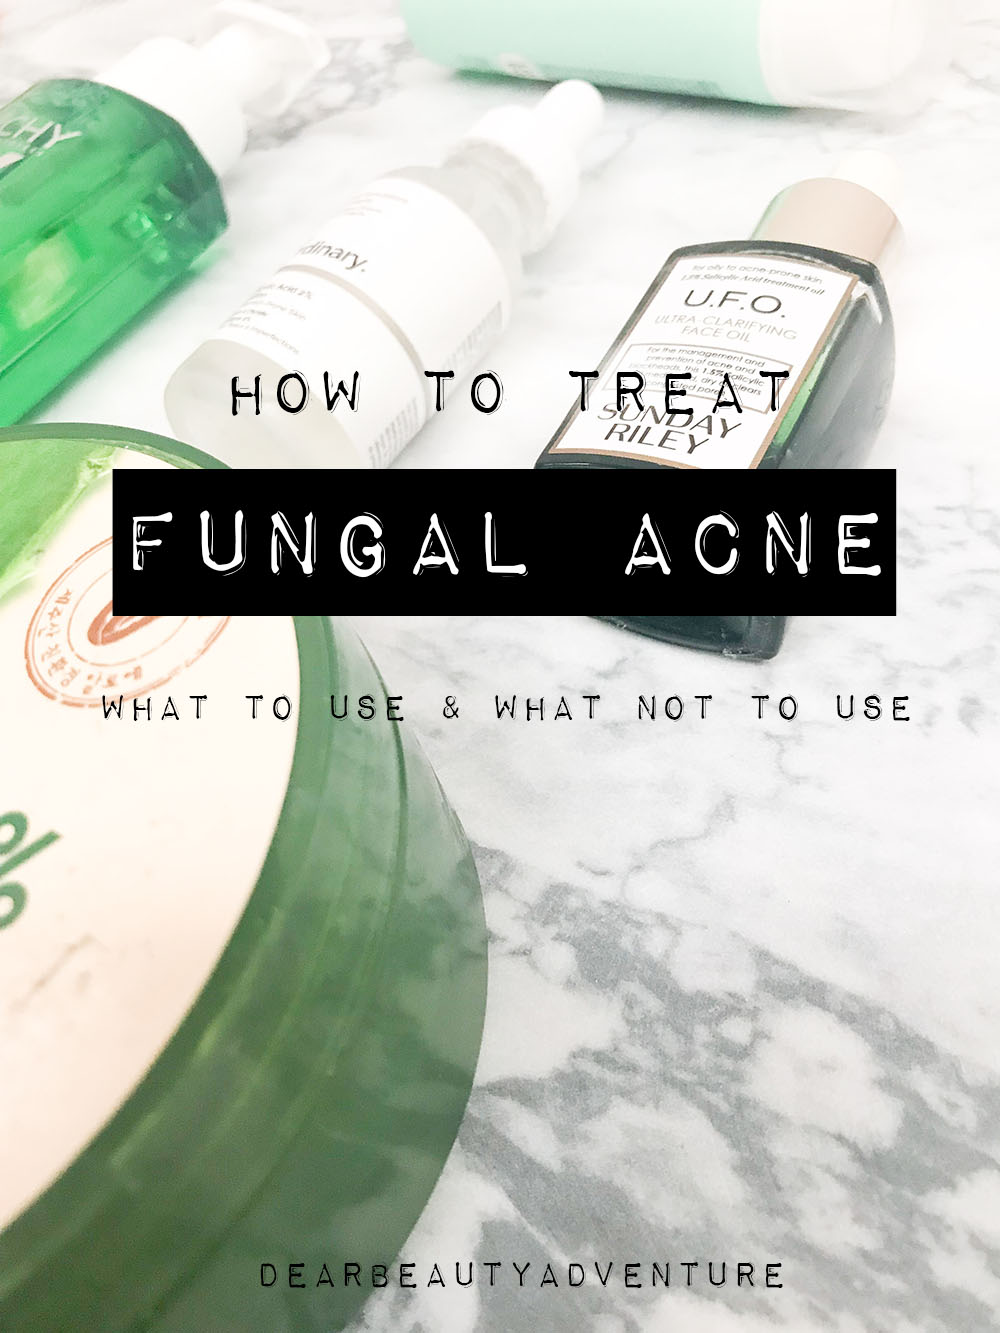 How To Get Rid Of Whiteheads Or Do You Have Fungal Acne Update Dear Beauty Adventure